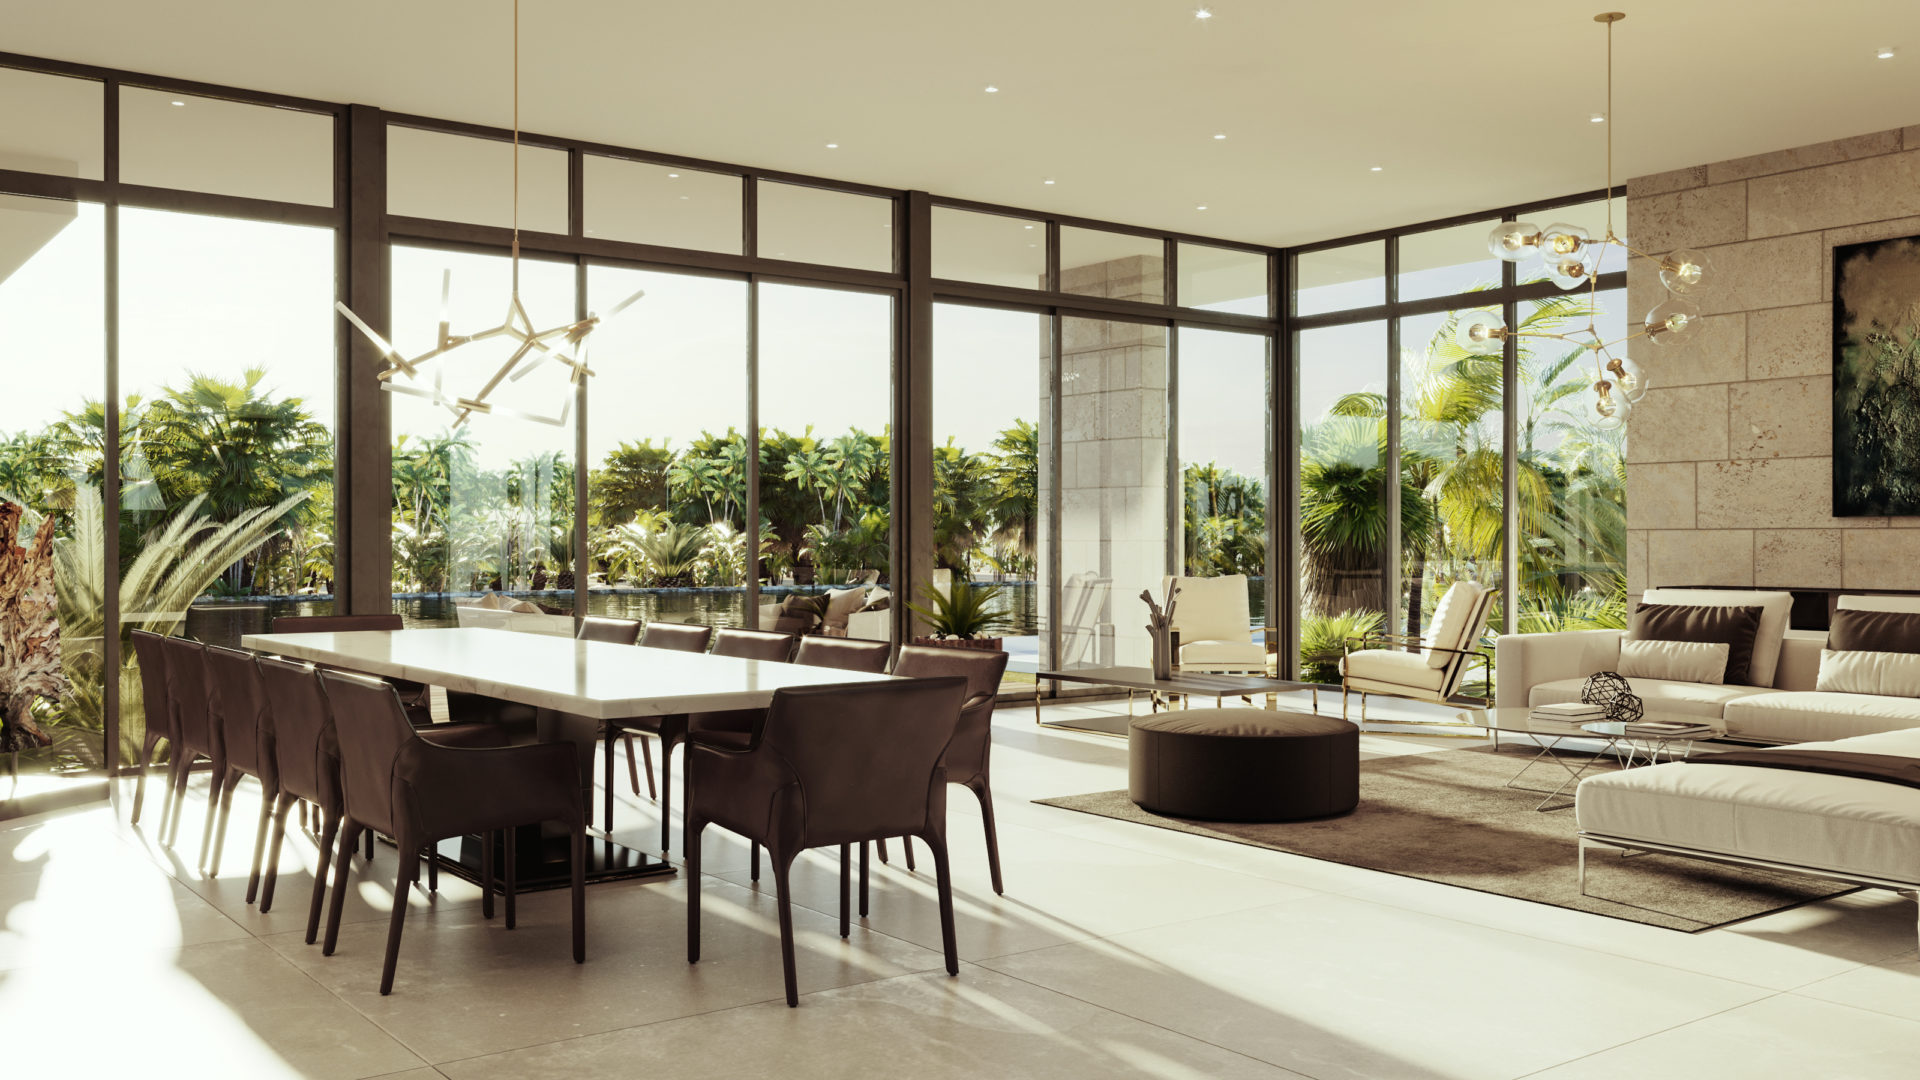 Bay Harbor Islands Miami Florida Builder High-end Custom Home render living dining room